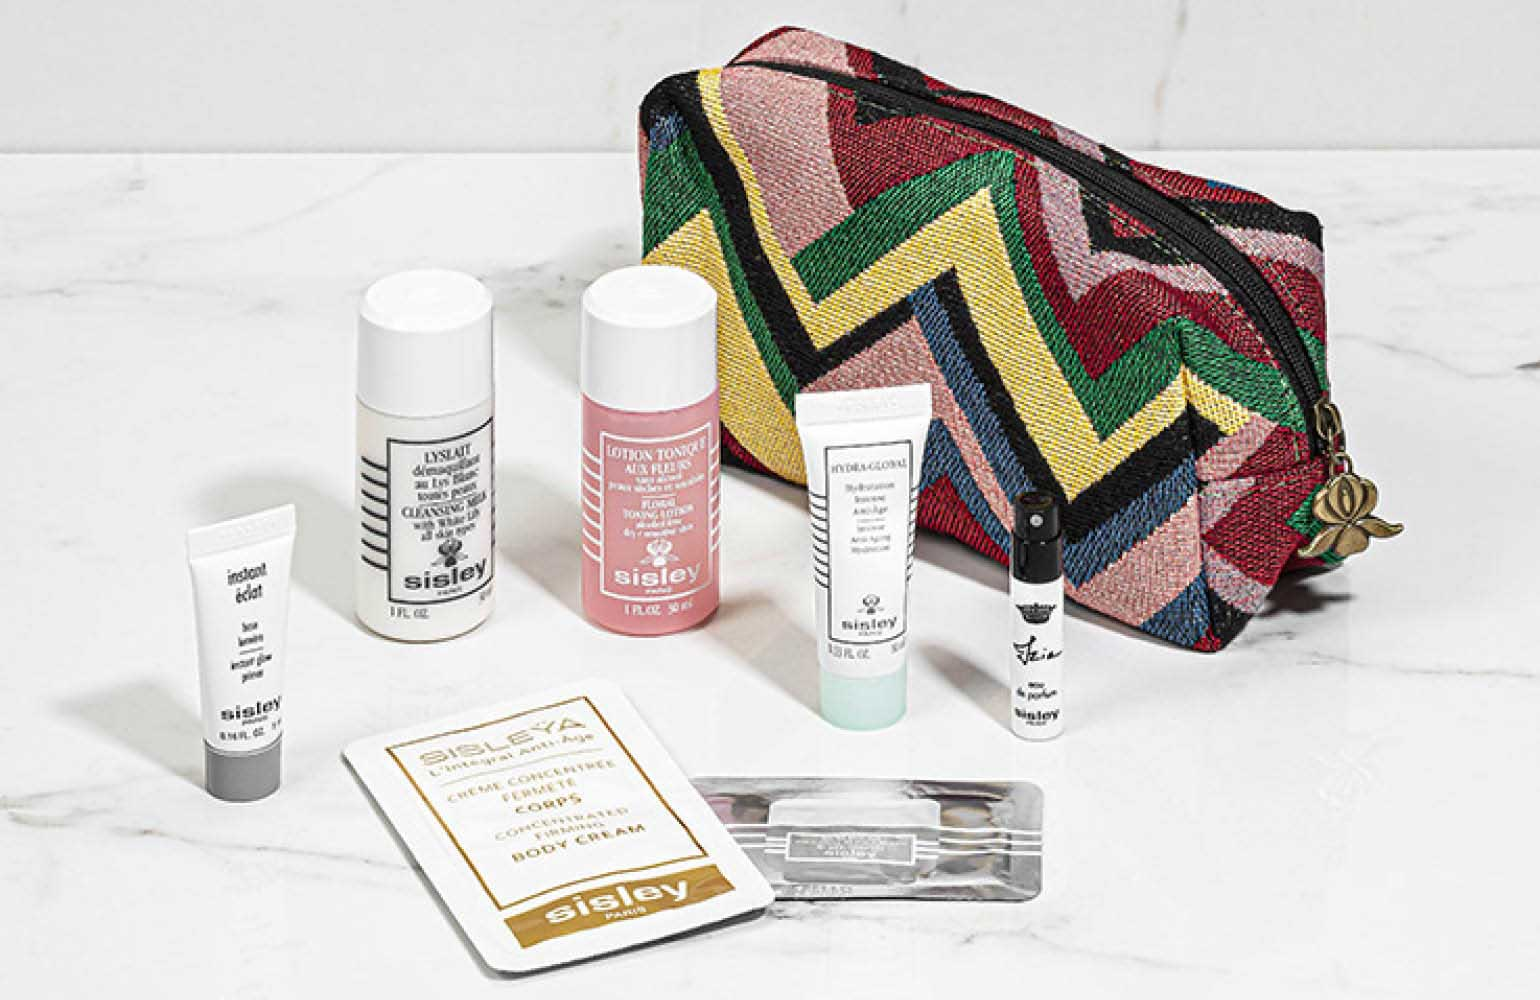 Your complimentary beauty bag from Sisley